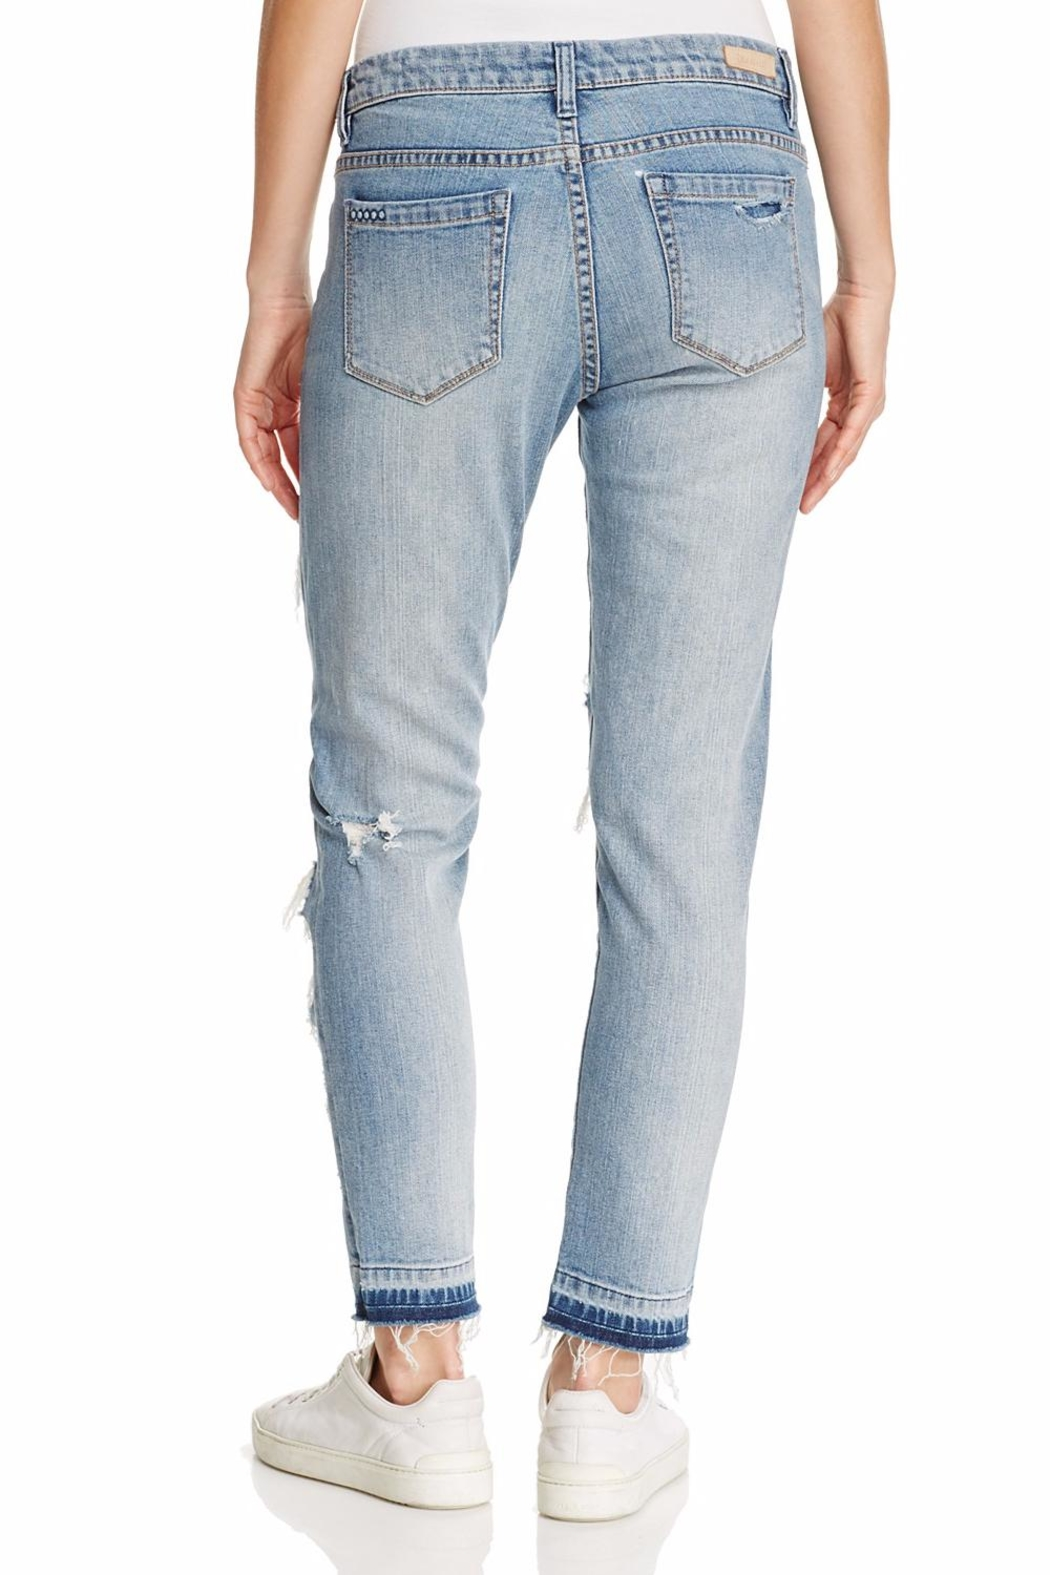 Blank NYC Distressed Jeans - Side Cropped Image